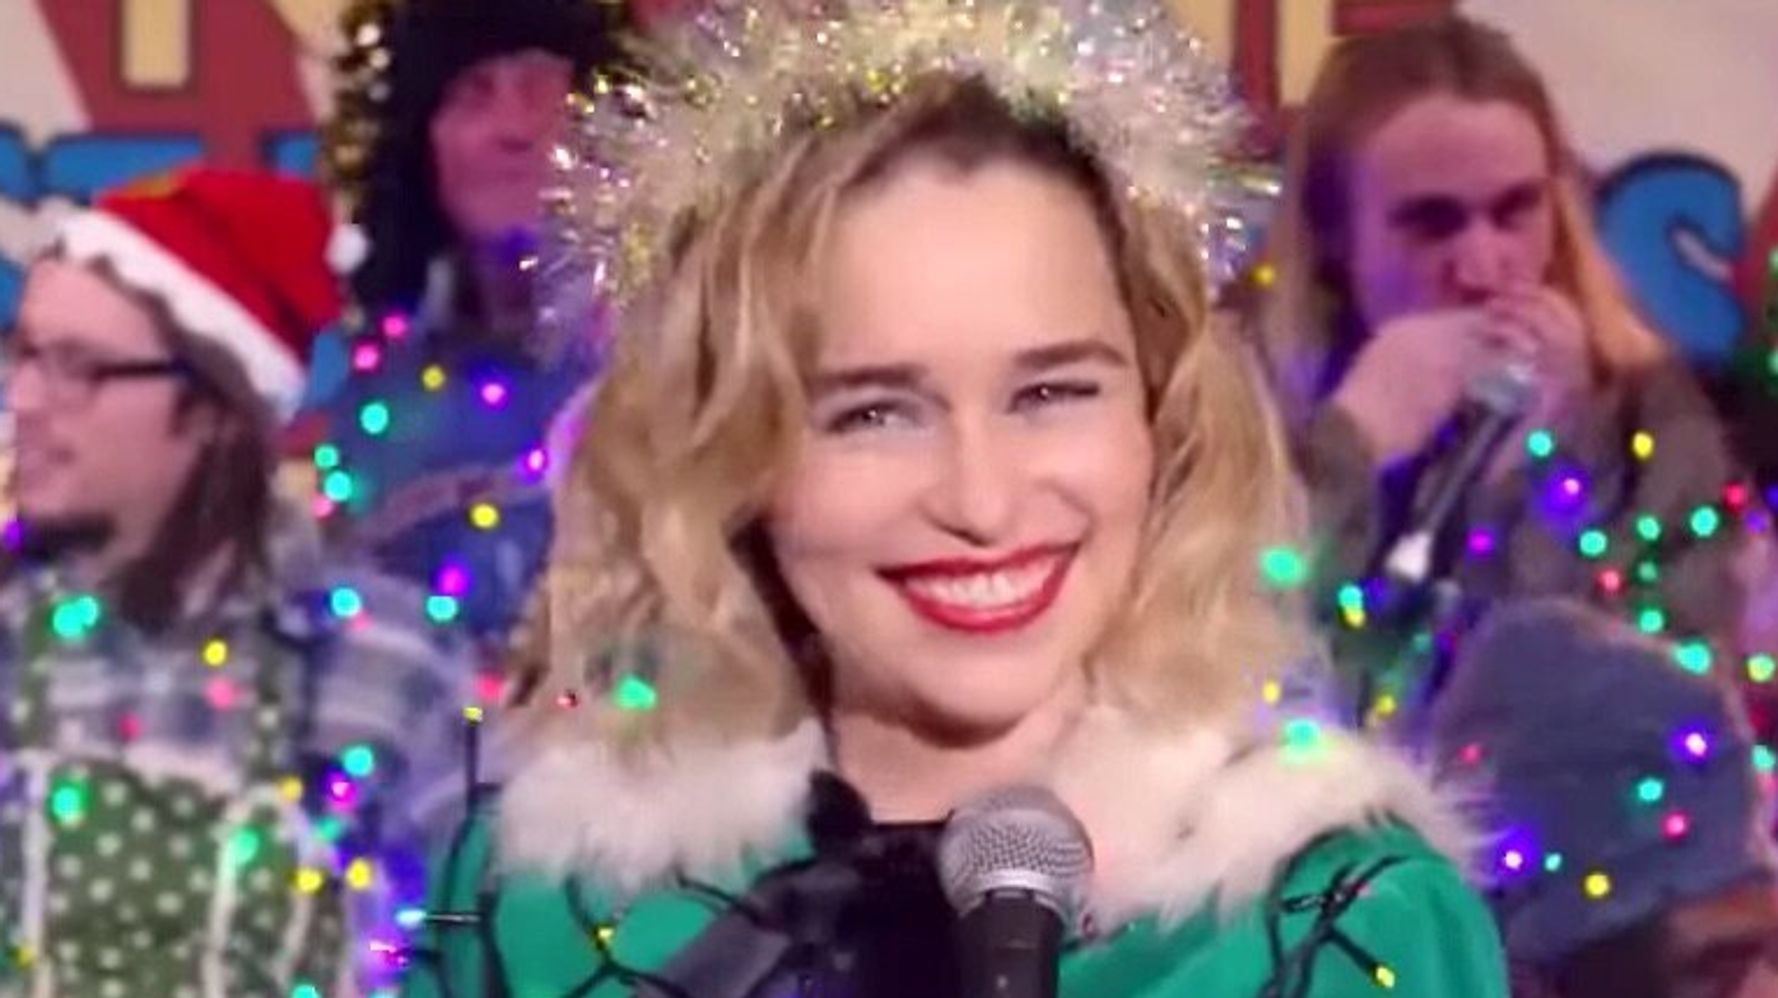 Westlake Legal Group 5d7b53663b0000c49fd2350f Emilia Clarke Sings Spine-Tingling Rendition Of 'Last Christmas' In New Trailer